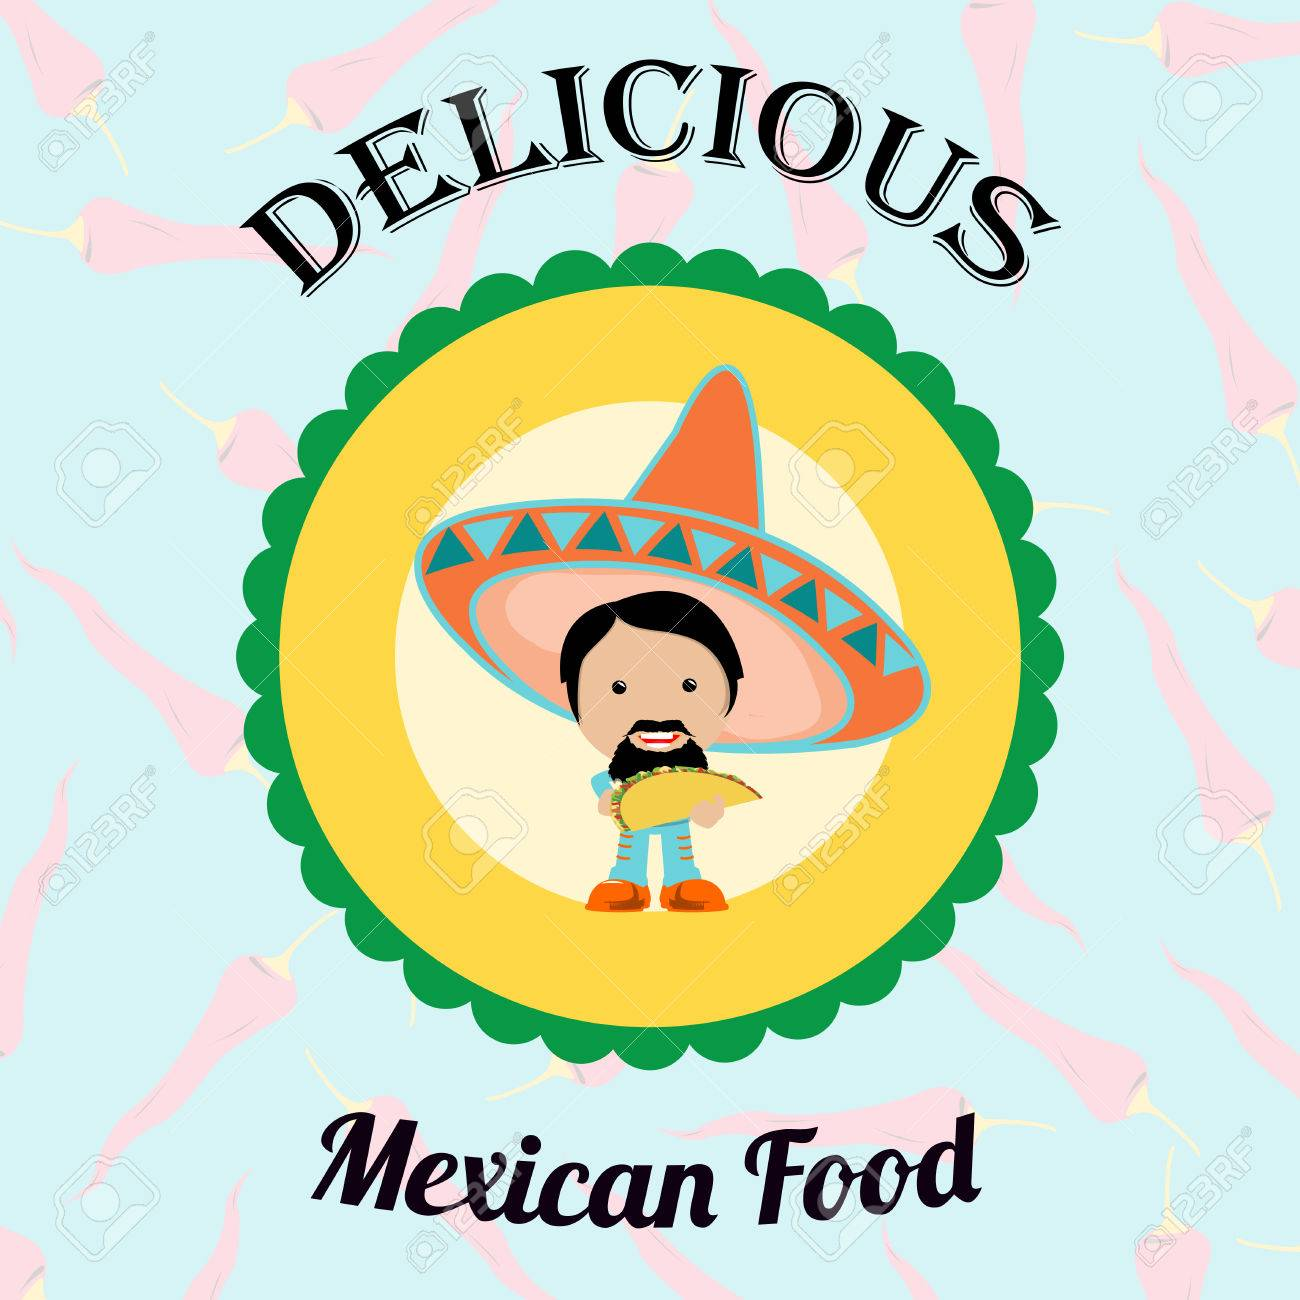 Mexican Food Illustration Over Color Background Royalty Free ...